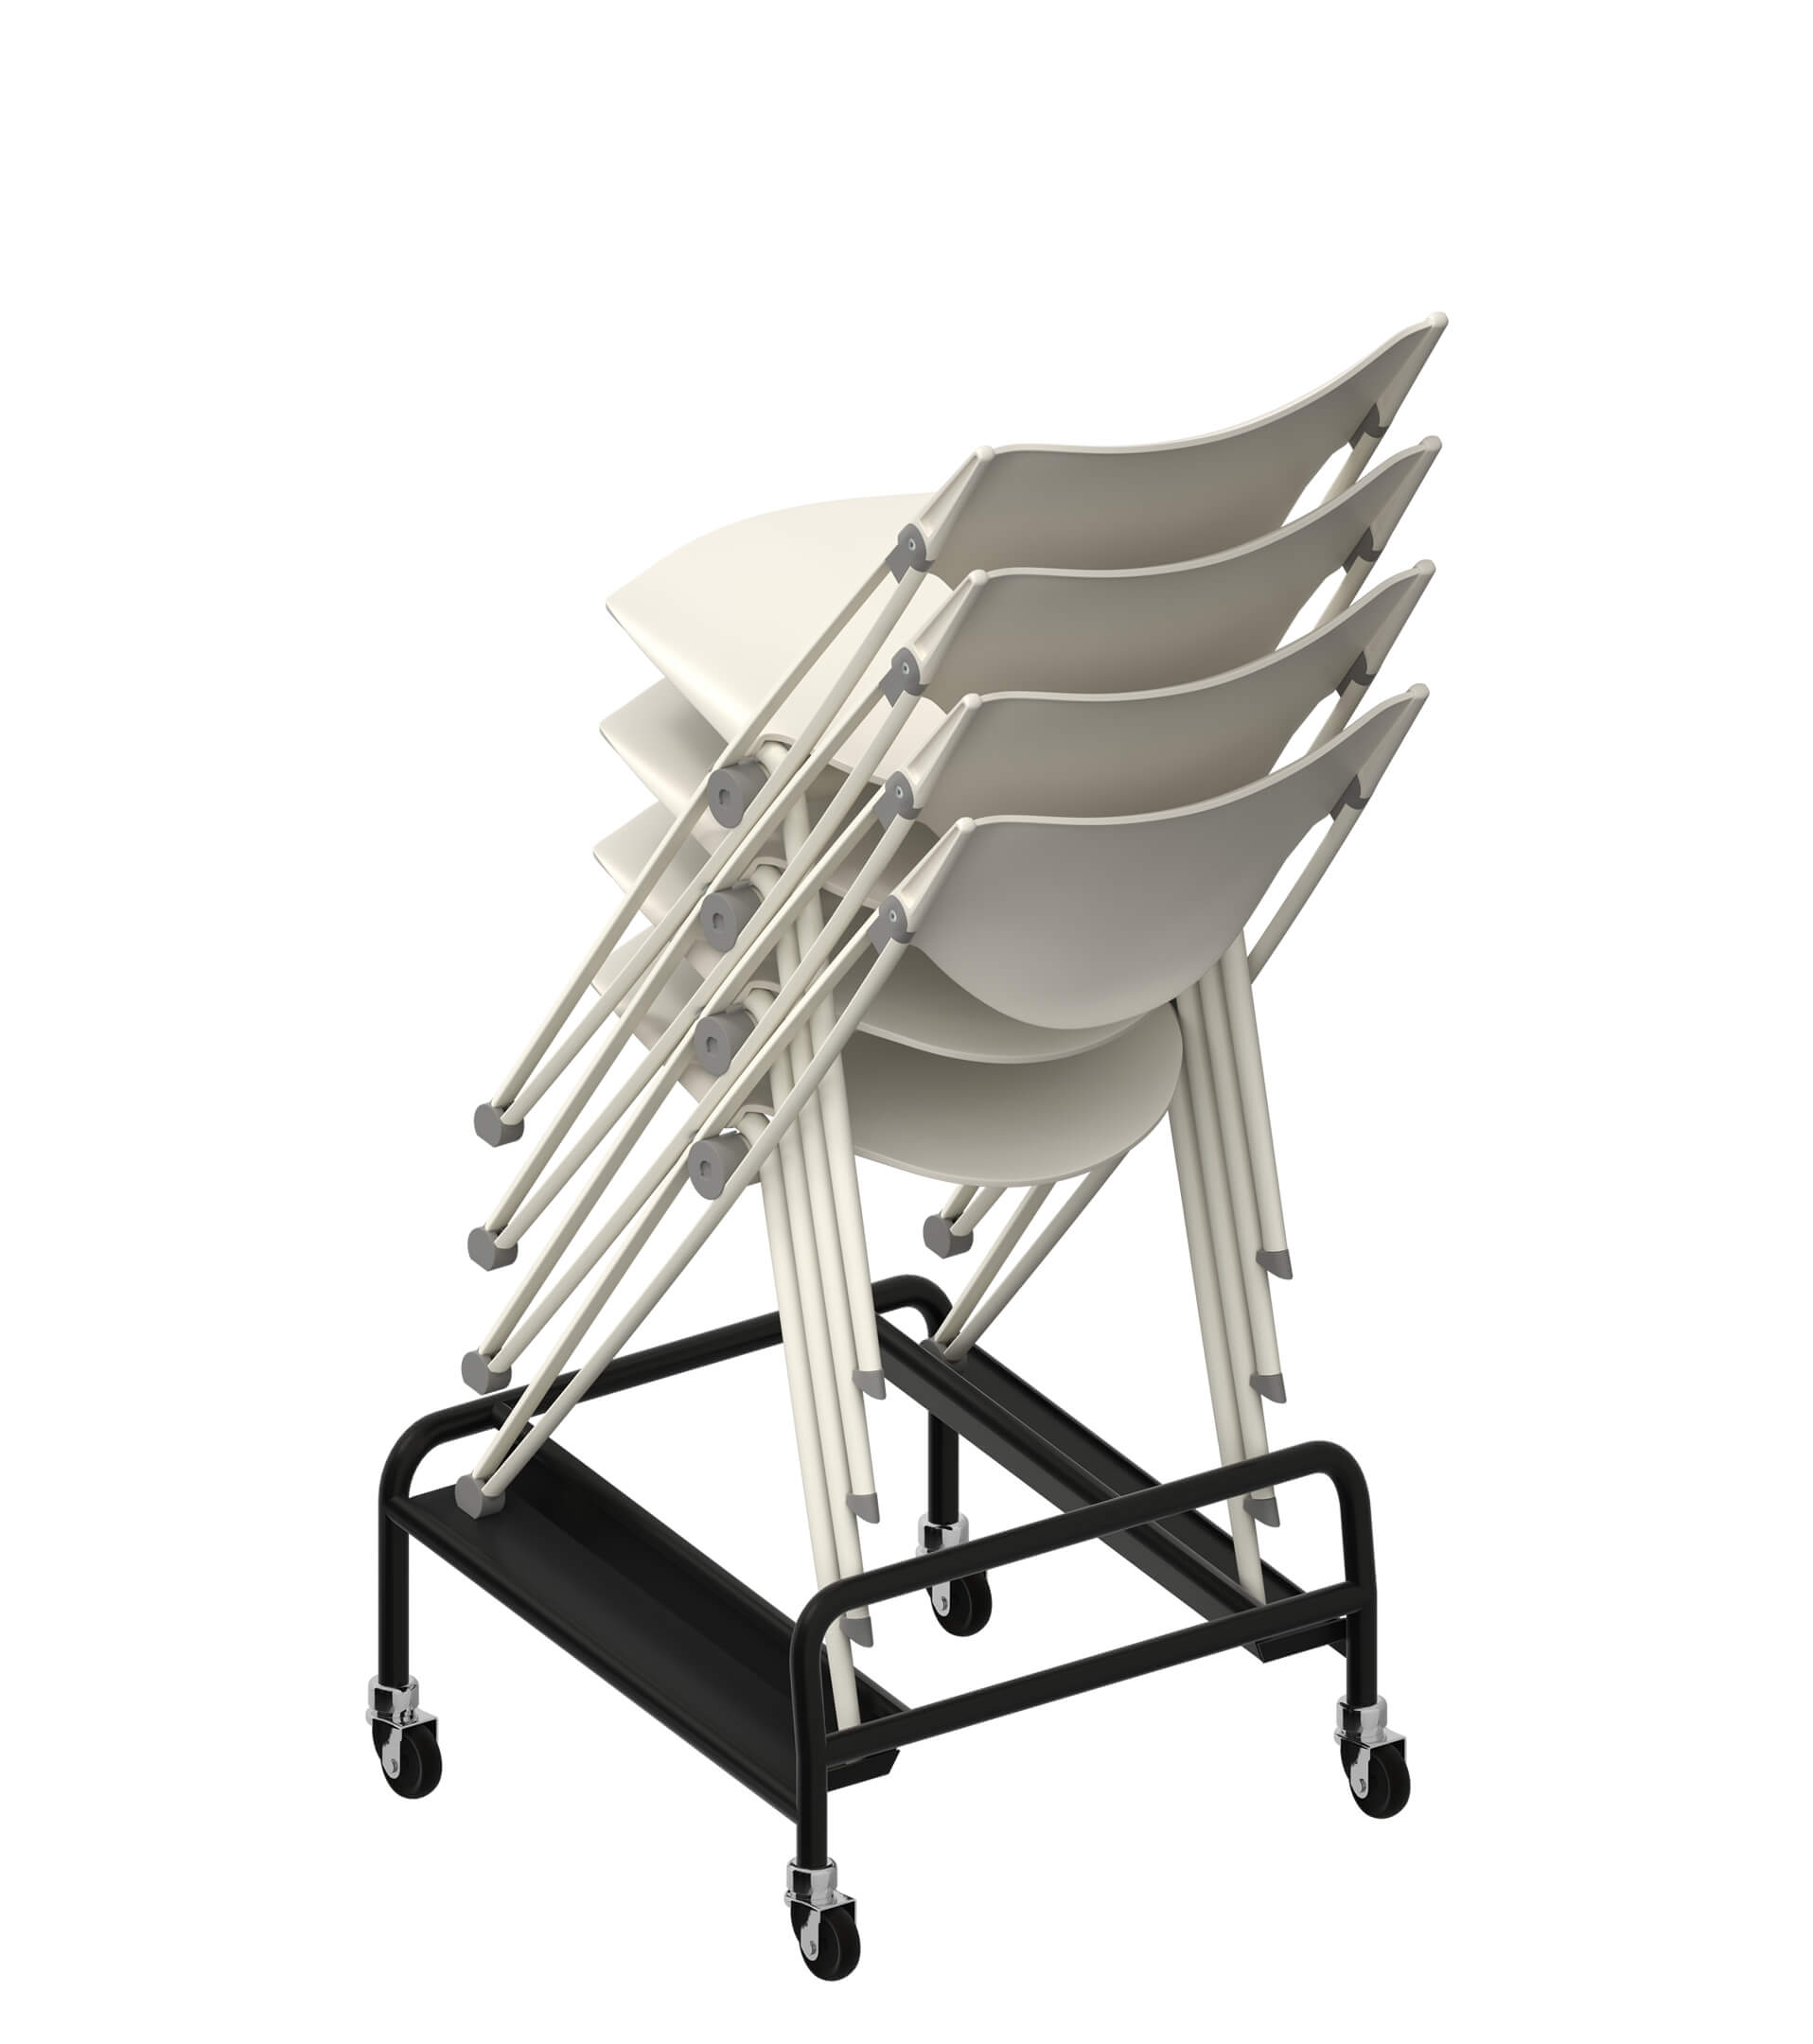 LAMM Conpasso Stackable Seating | Woodwood Group